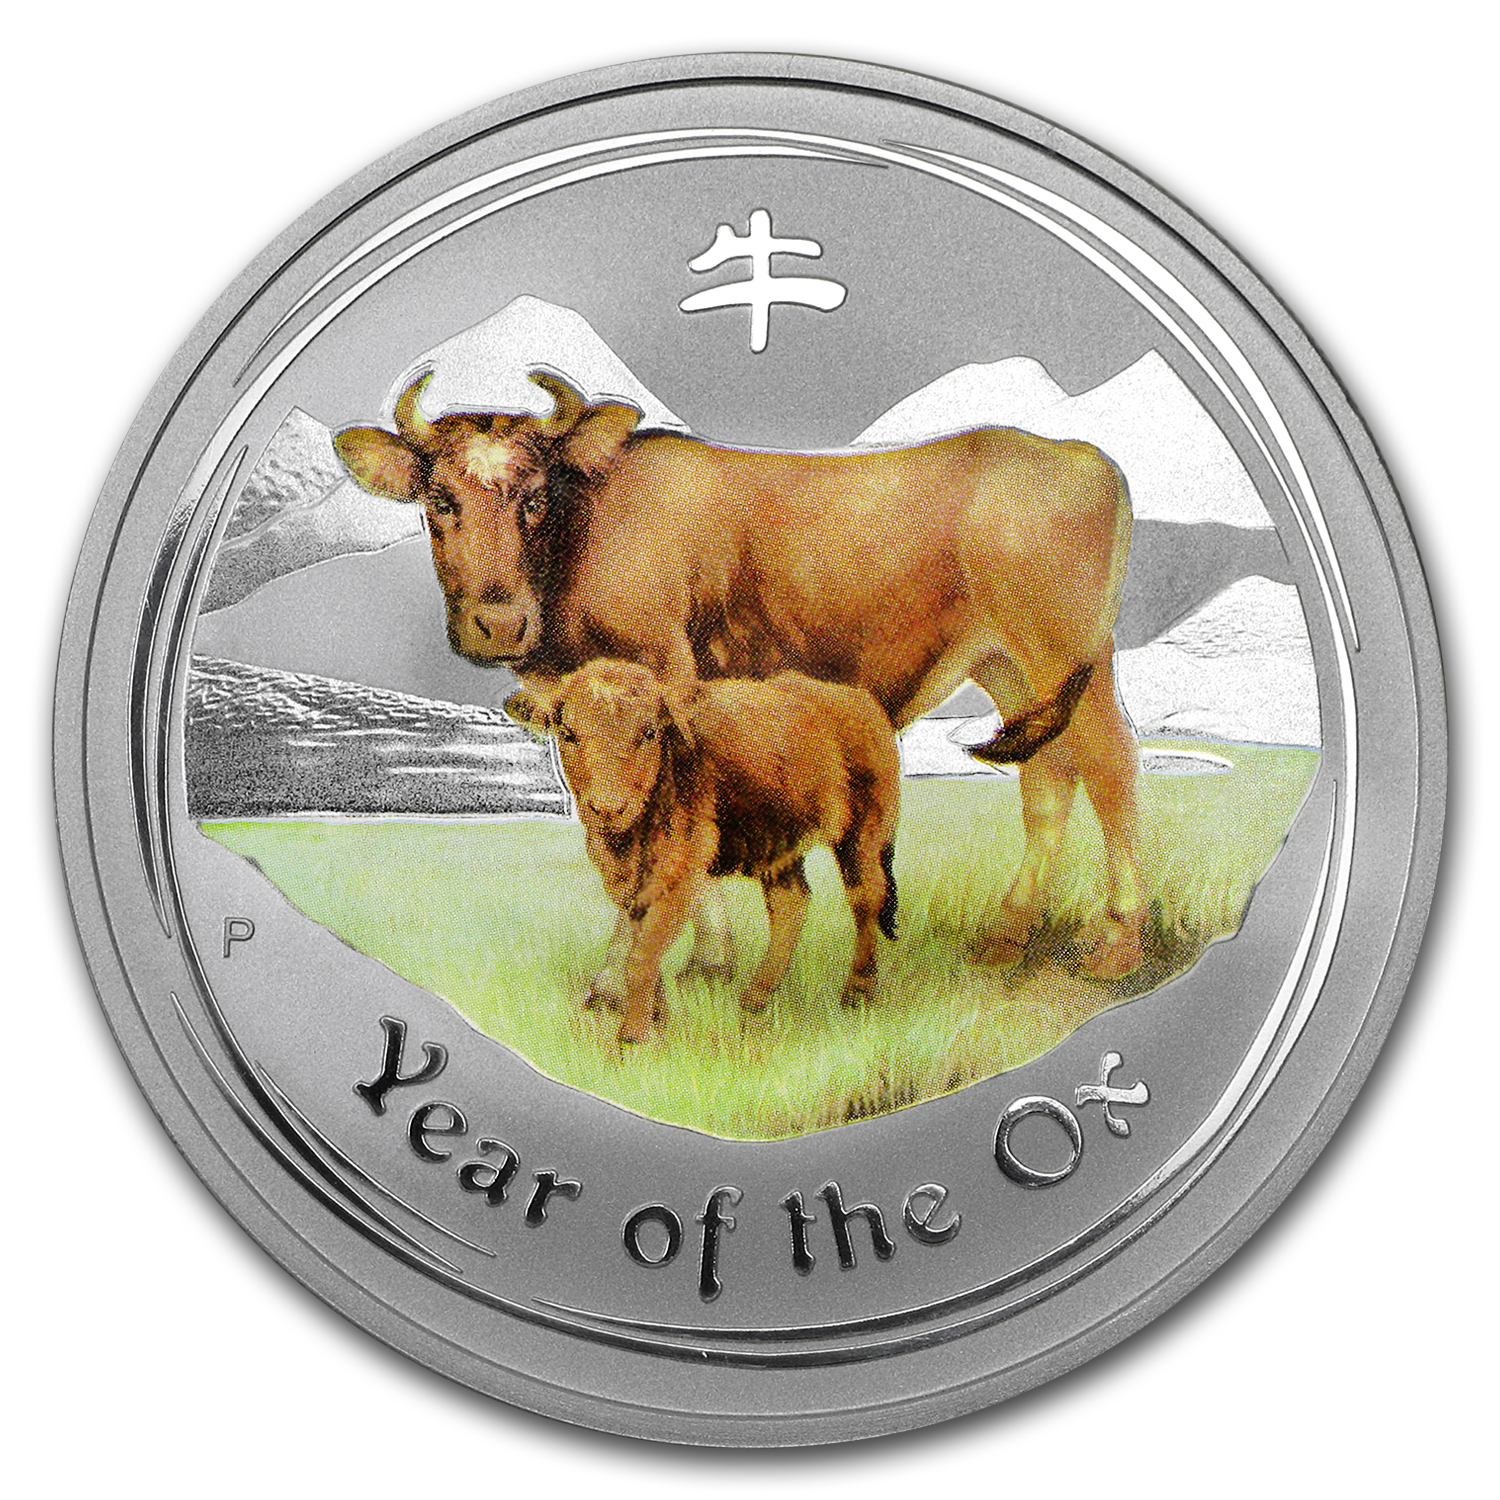 2009 Australia 1 oz Silver Ox BU (Series II, Colorized)